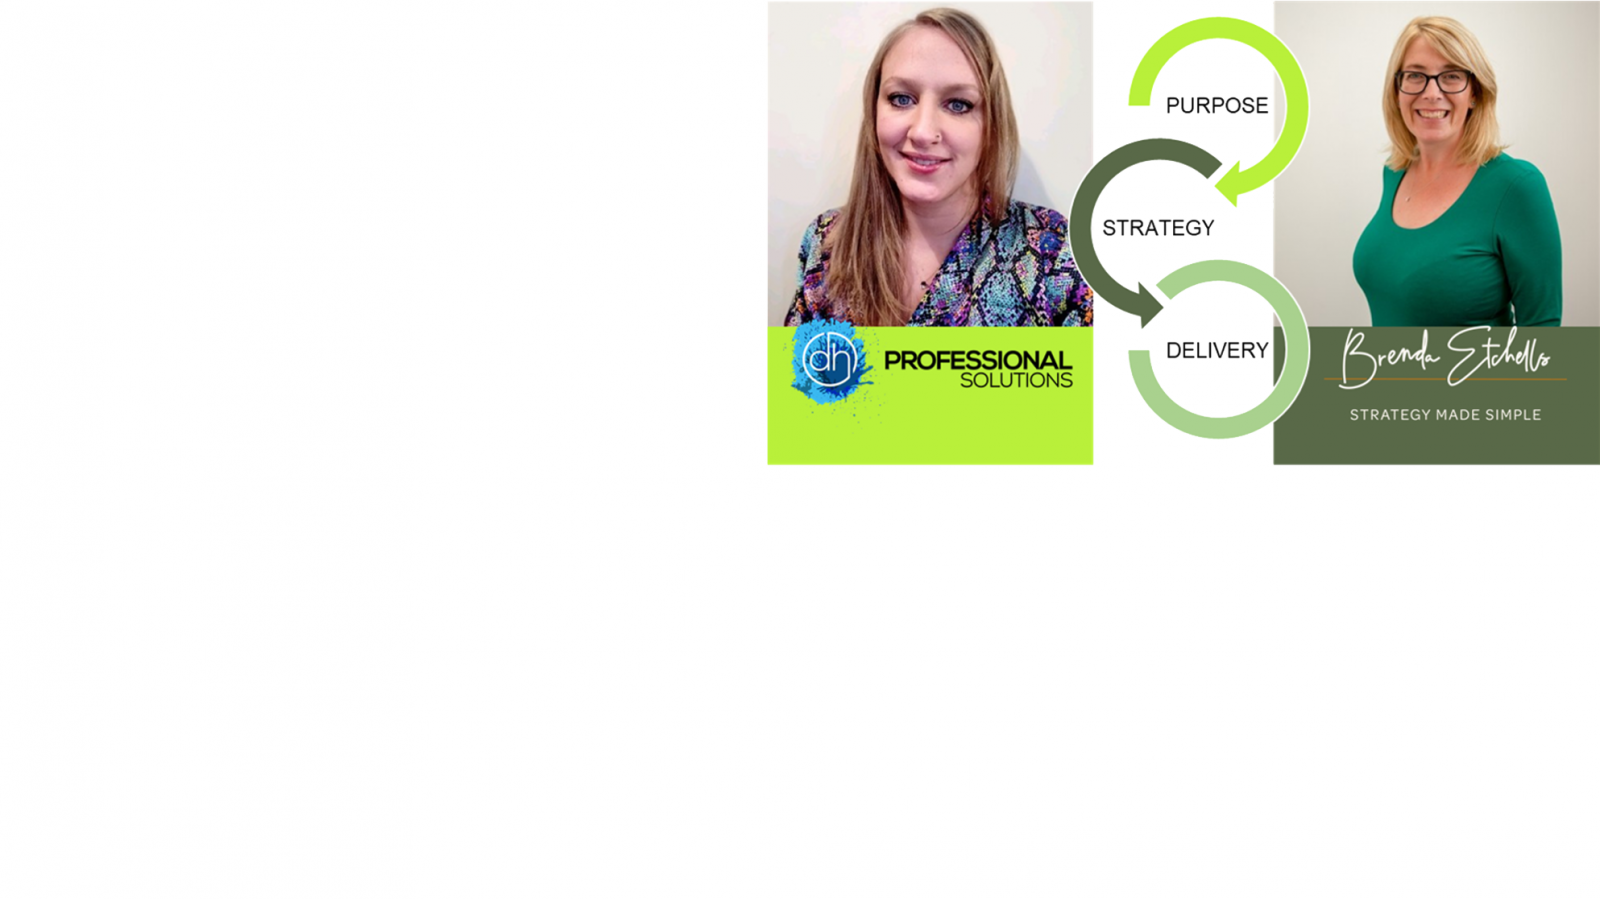 Delivering a Purpose Driven Strategy in a Digital World - DH Professional Solutions & Carduus Ltd header image